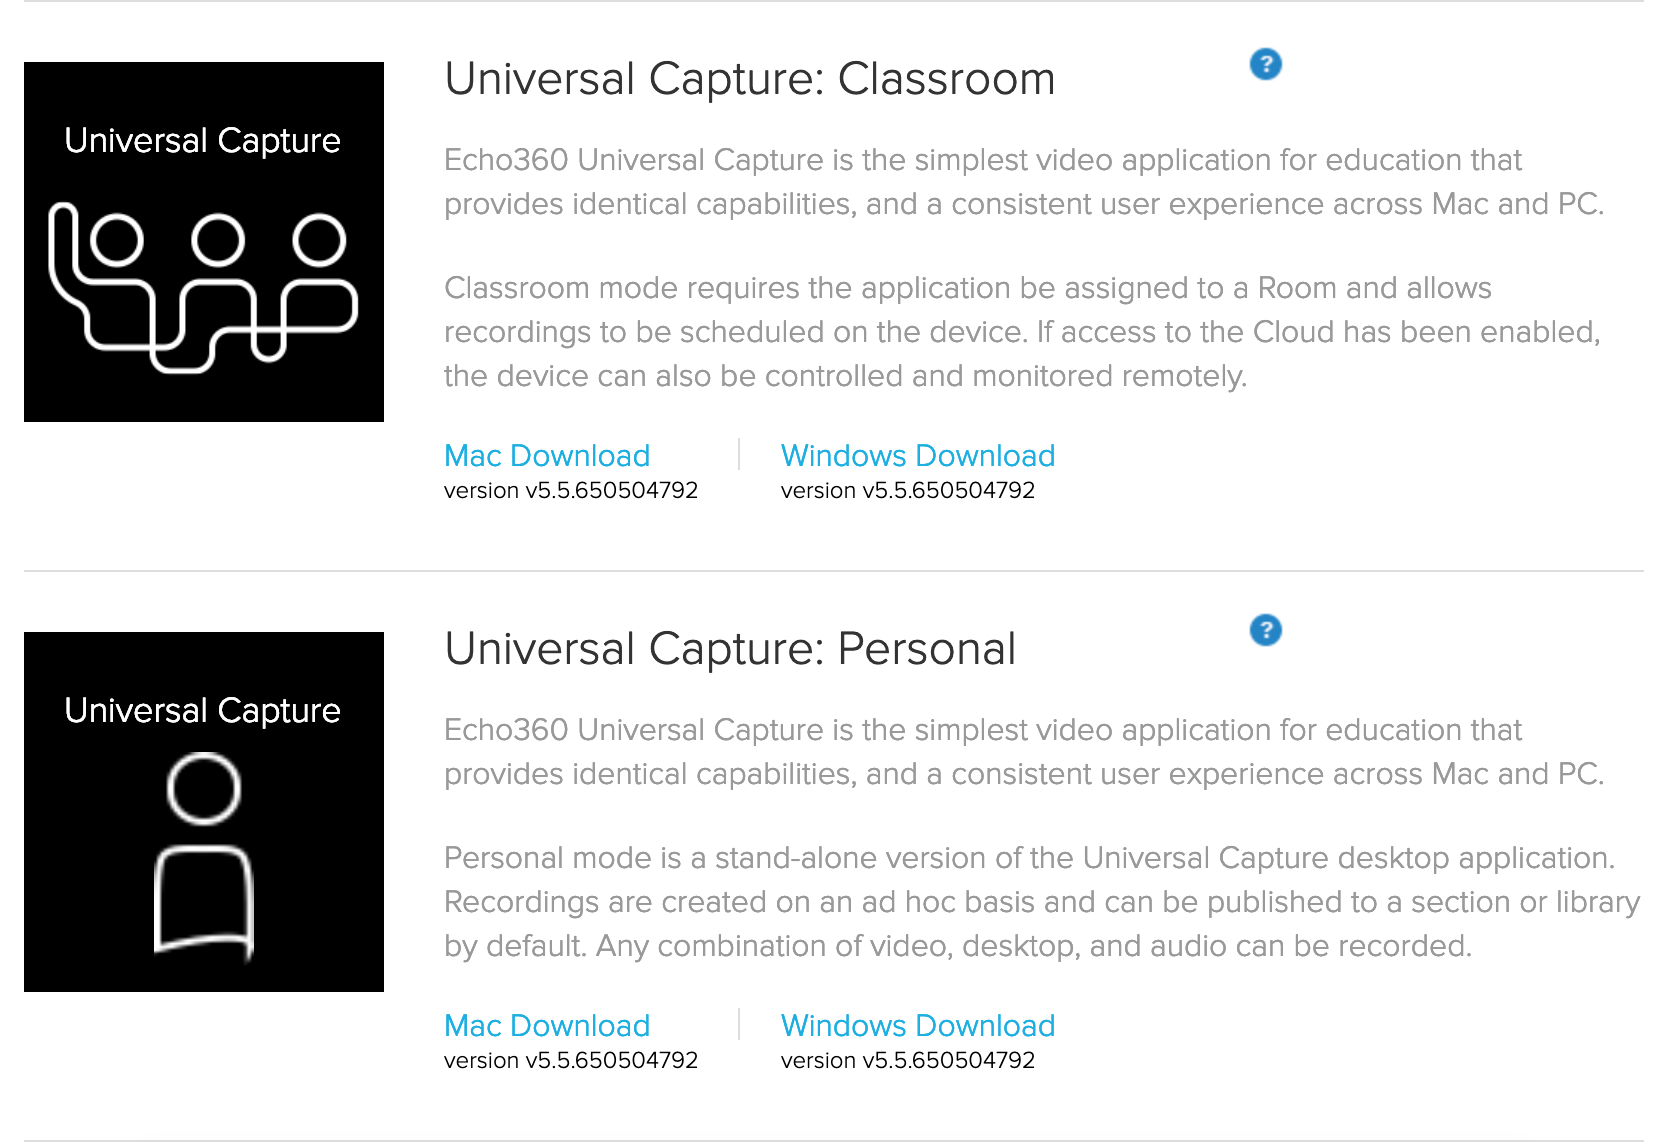 Universal Capture download options (Admin view)